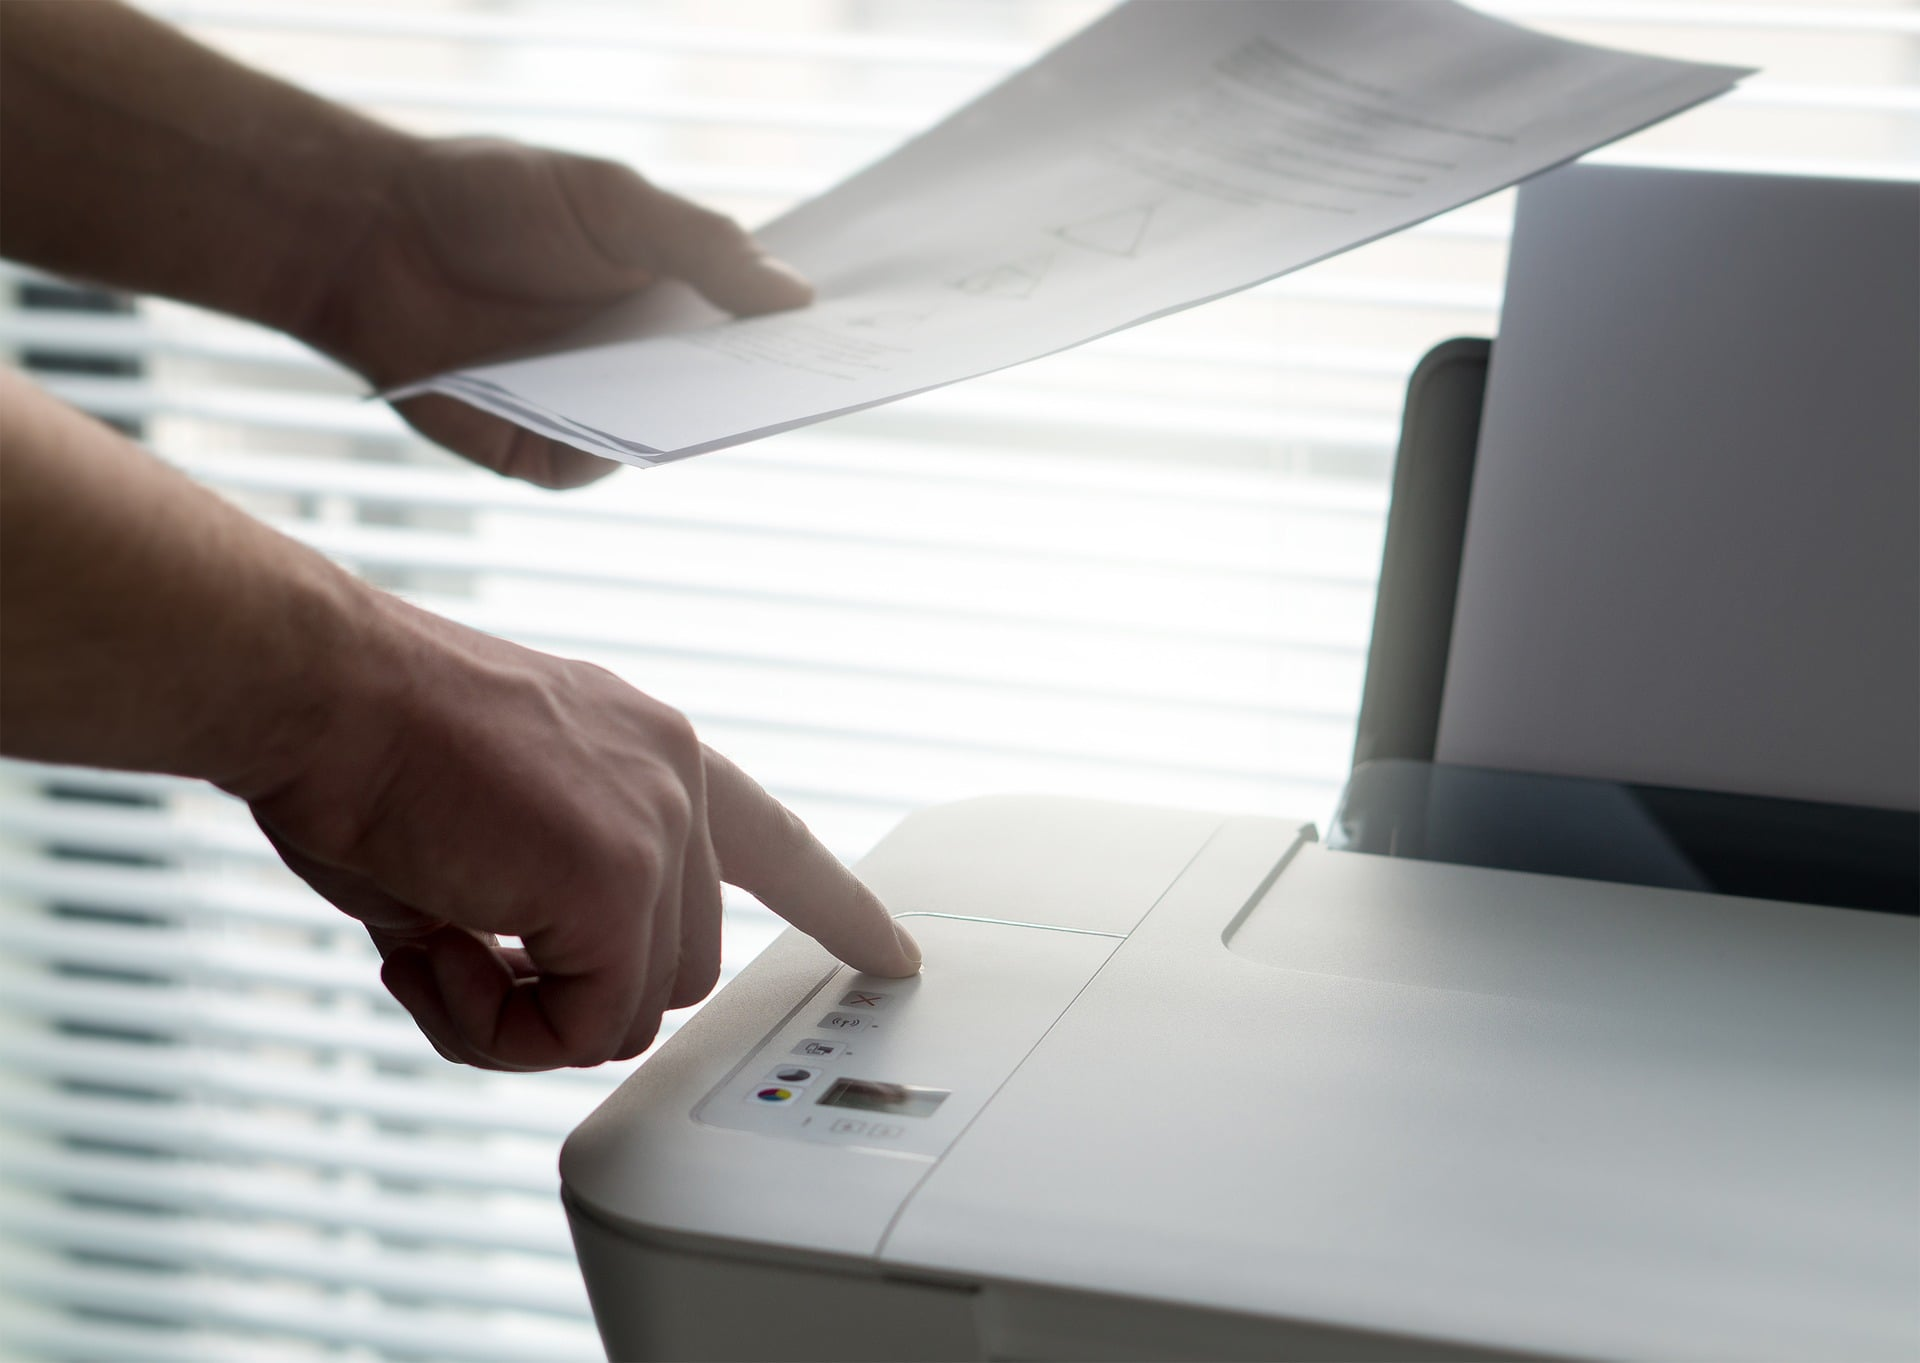 NHS Supply Chain Tells Trusts It Must Stop Using Fax Machines